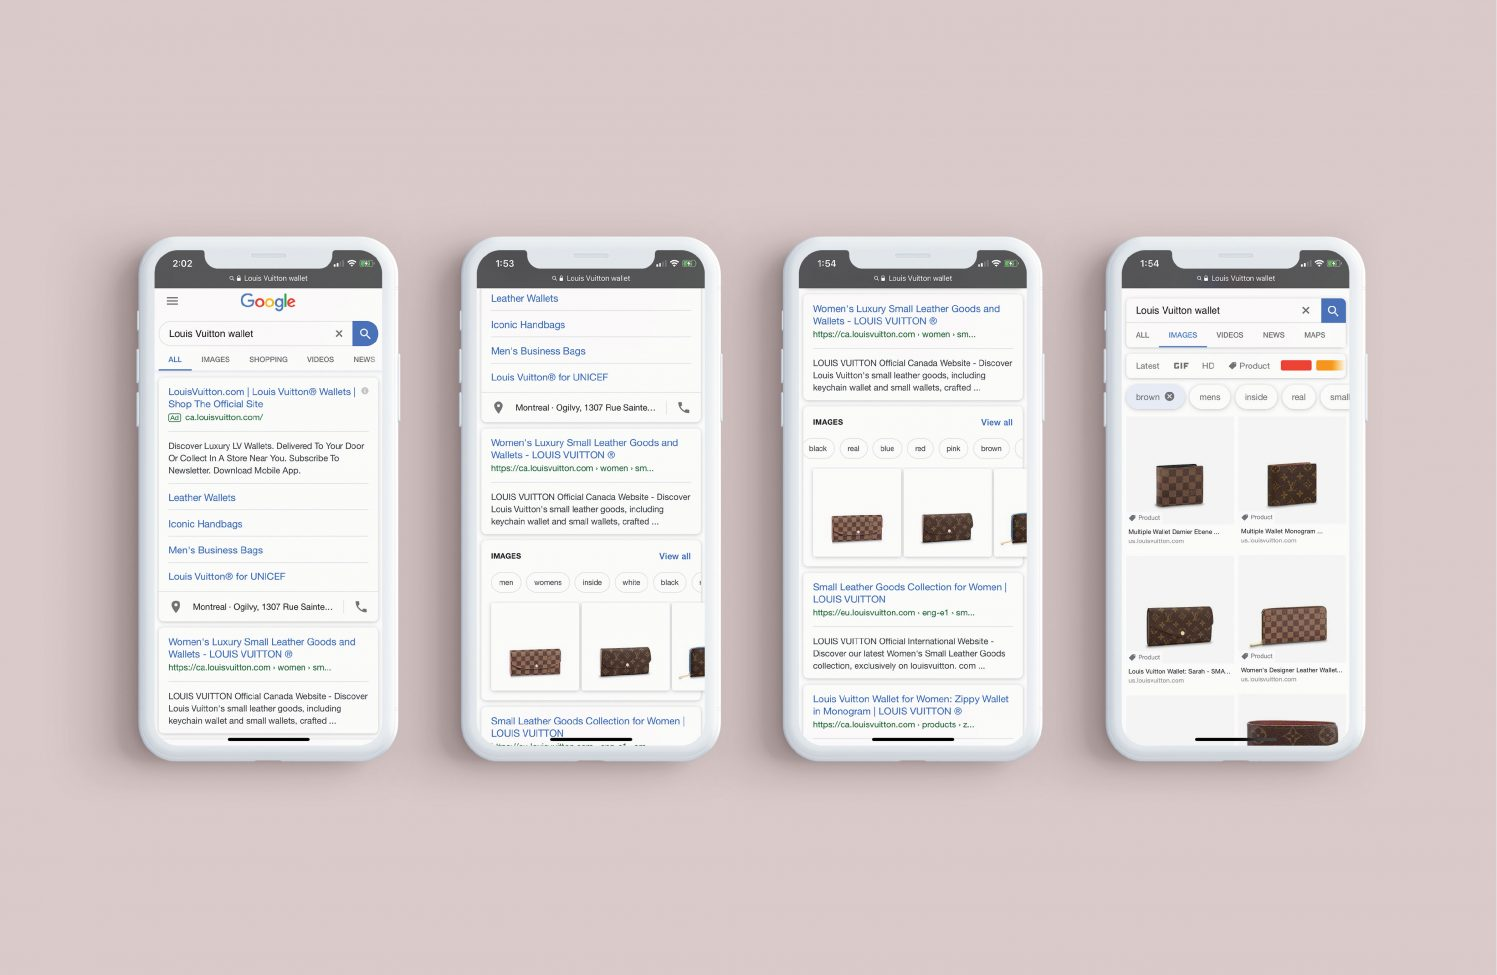 Google branded search and image results